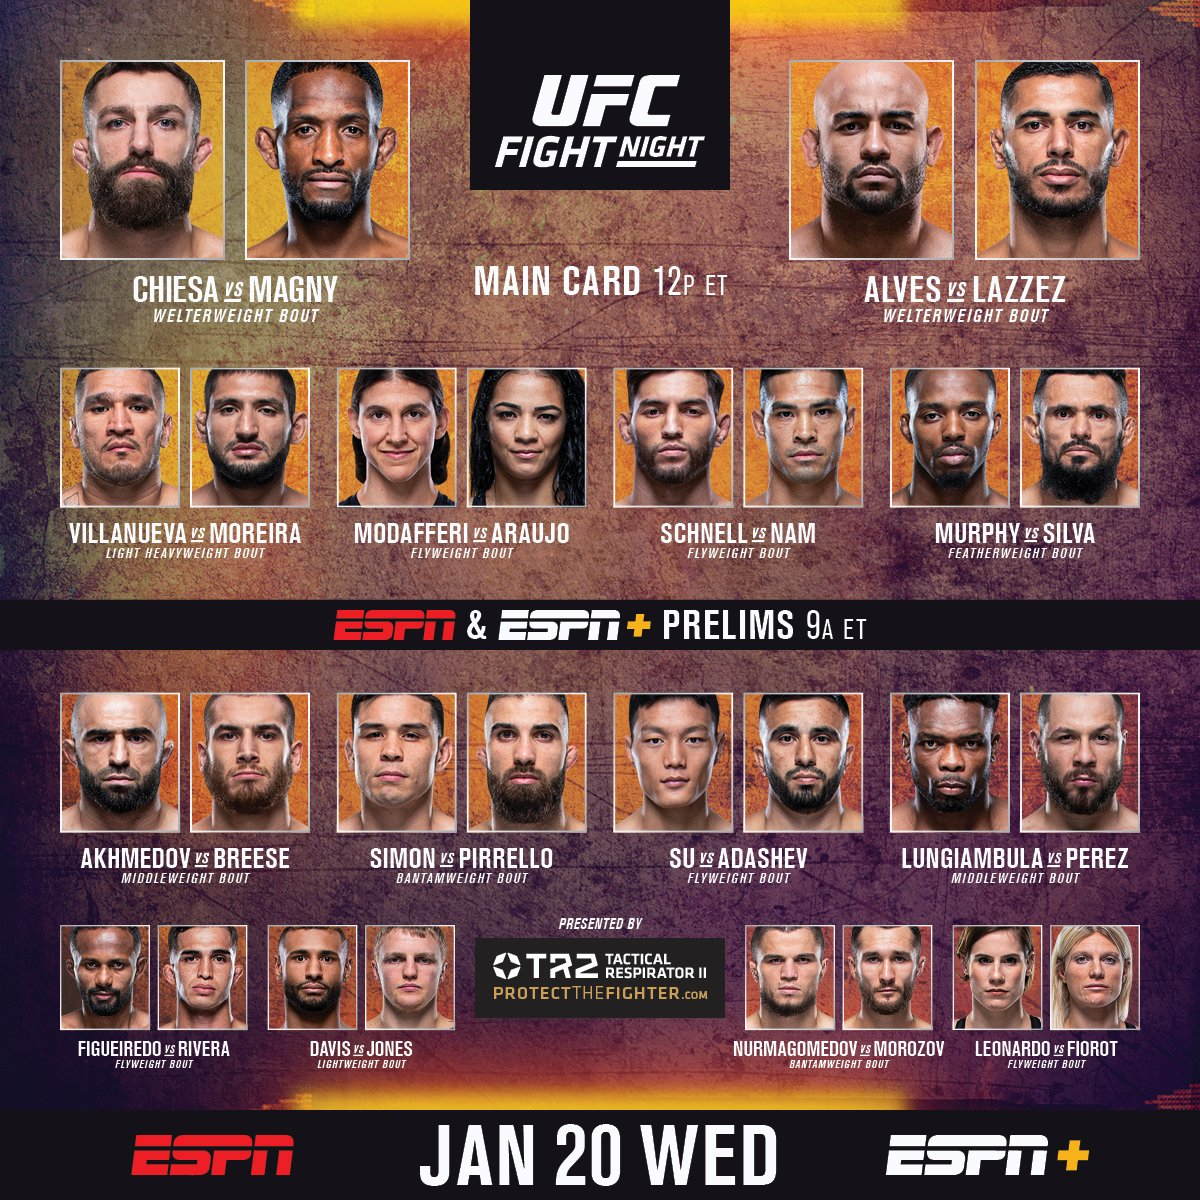 #UFCFightIsland8 prelims are LIVE and FREE on @espn and #ESPNPlus in 30 minutes!  #InAbuDhabi @VisitAbuDhabi https://t.co/D70J4TOHe0